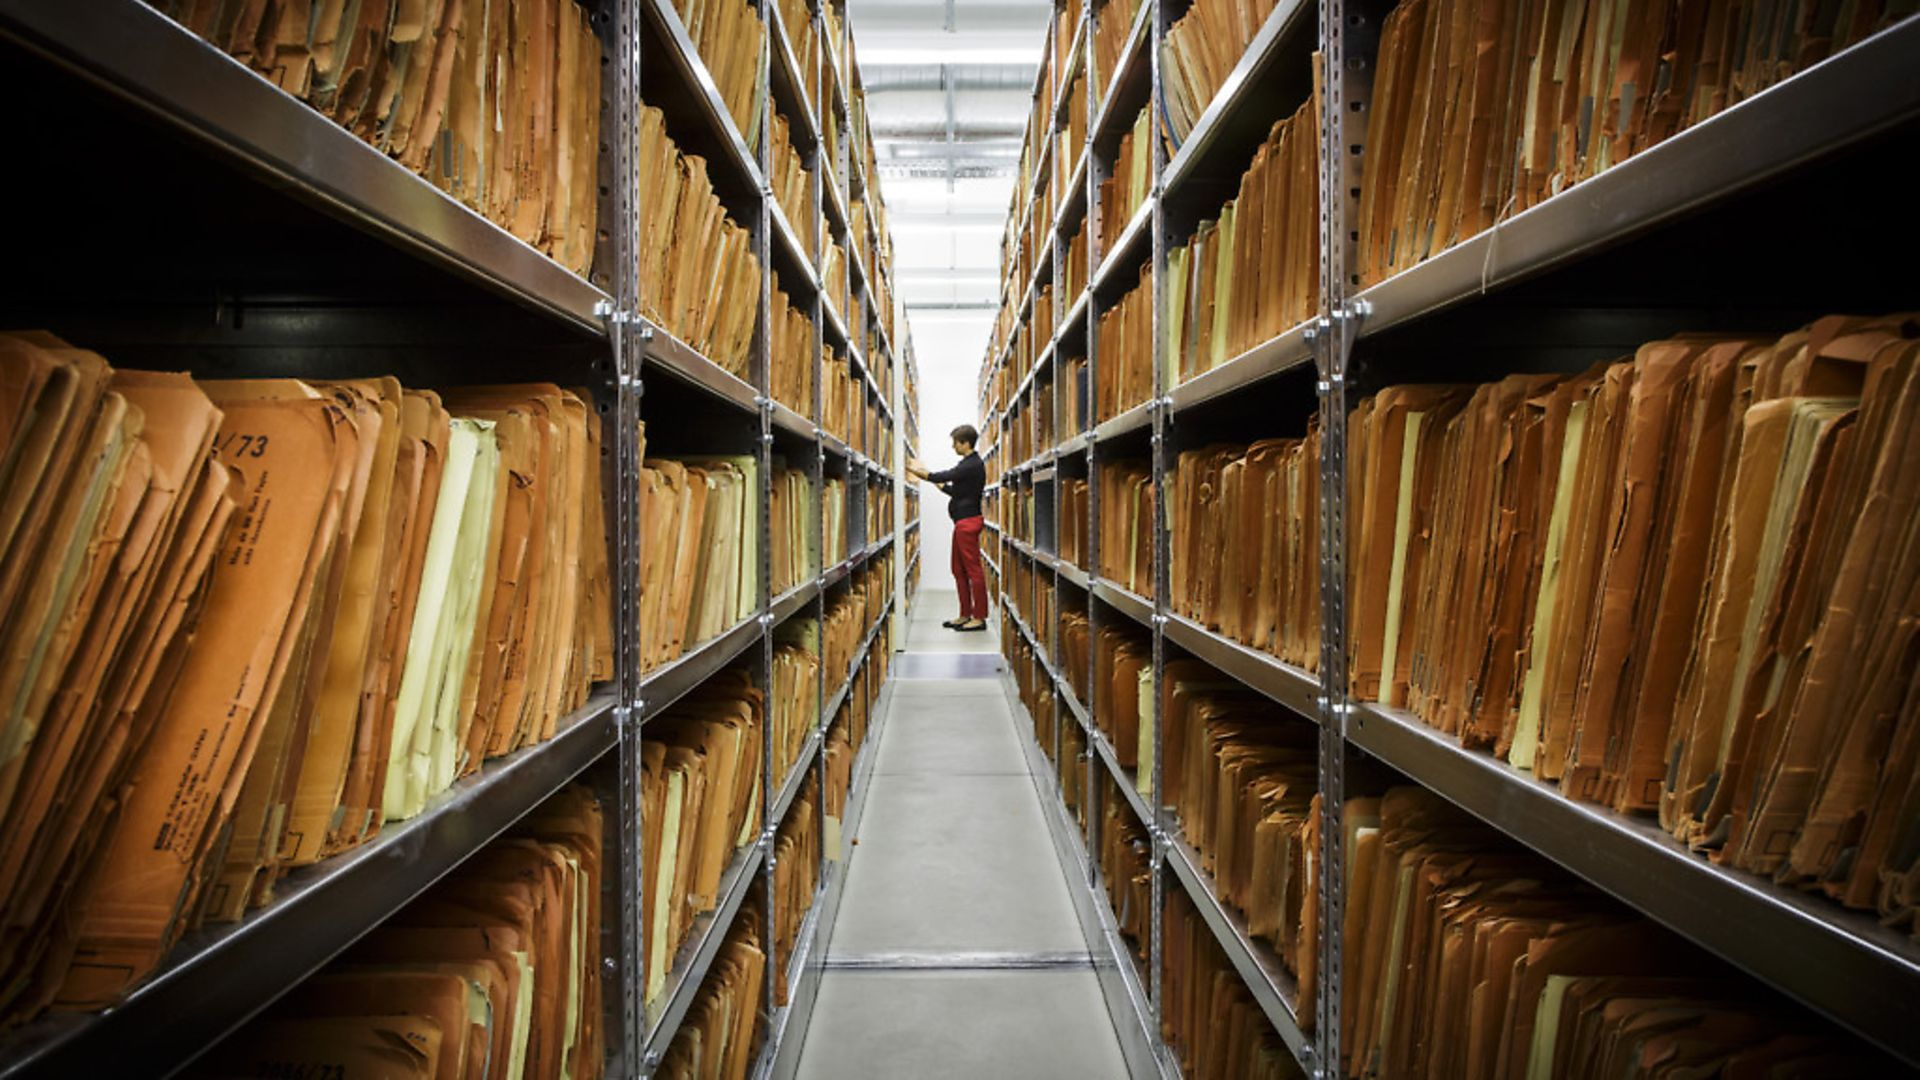 The archive of the Stasi - the former east German secret police - in Berlin. Picture: Thomas Trutschel/Photothek via Getty Images - Credit: Photothek via Getty Images